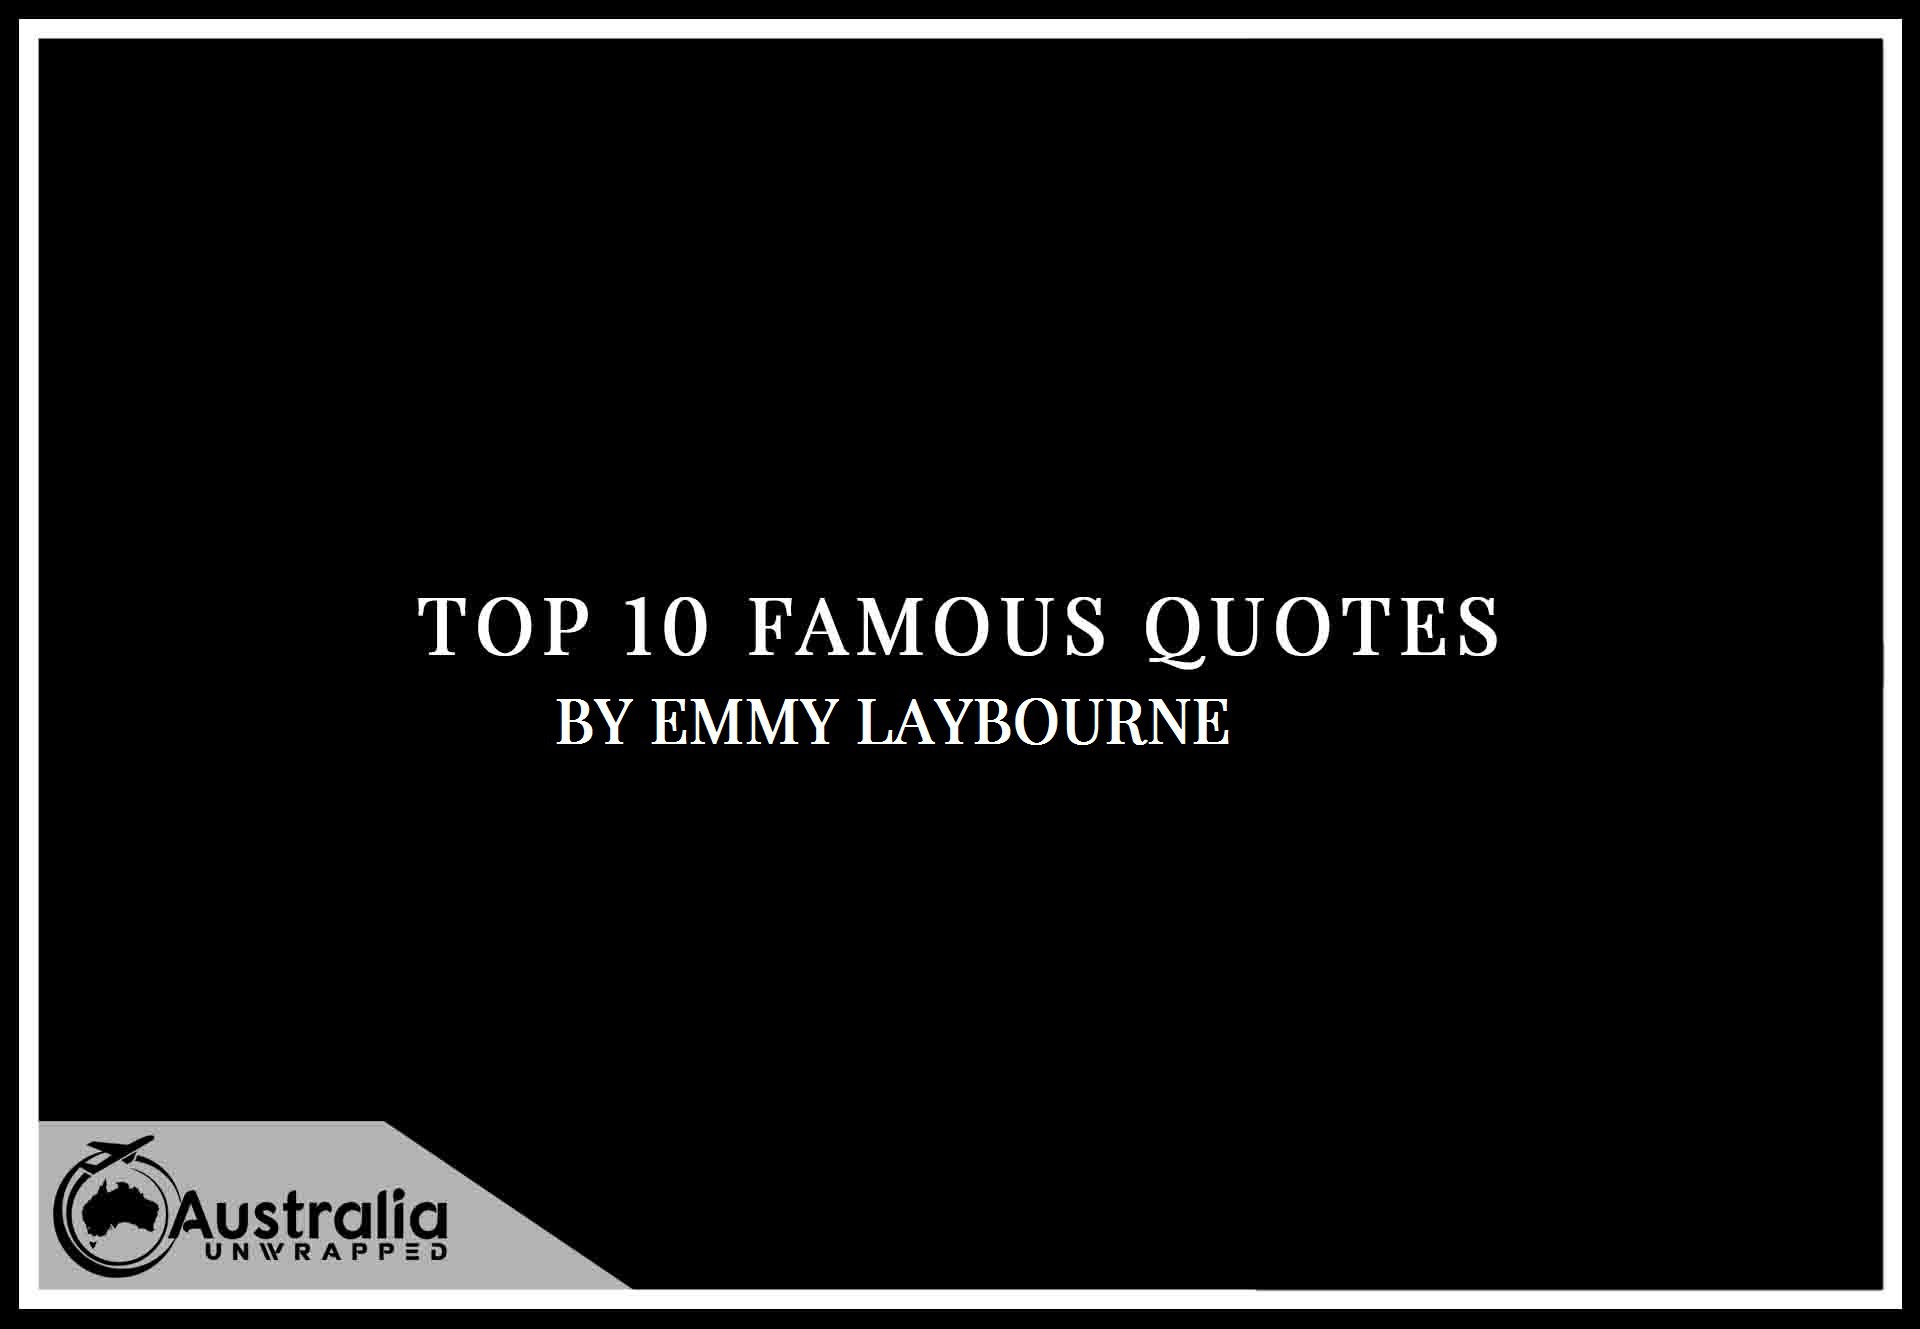 Emmy Laybourne's Top 10 Popular and Famous Quotes